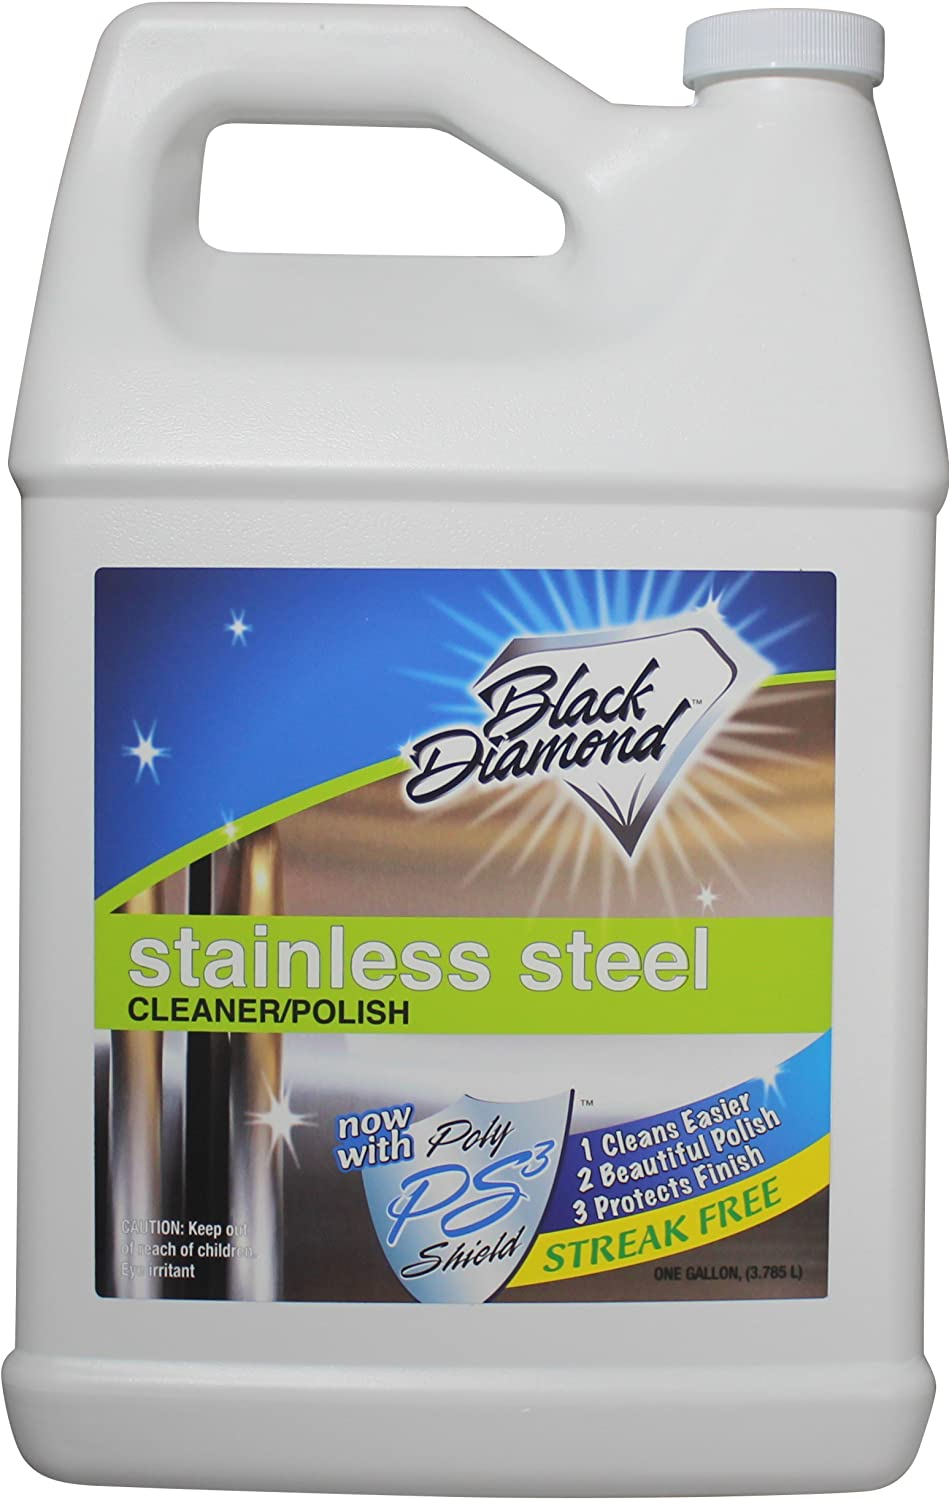 Stainless Steel Cleaner & Polish Best Streak Free Clean & Shine for All Appliances Refrigerators, Oven, Stove, Dishwasher and More. by Black Diamond Stoneworks